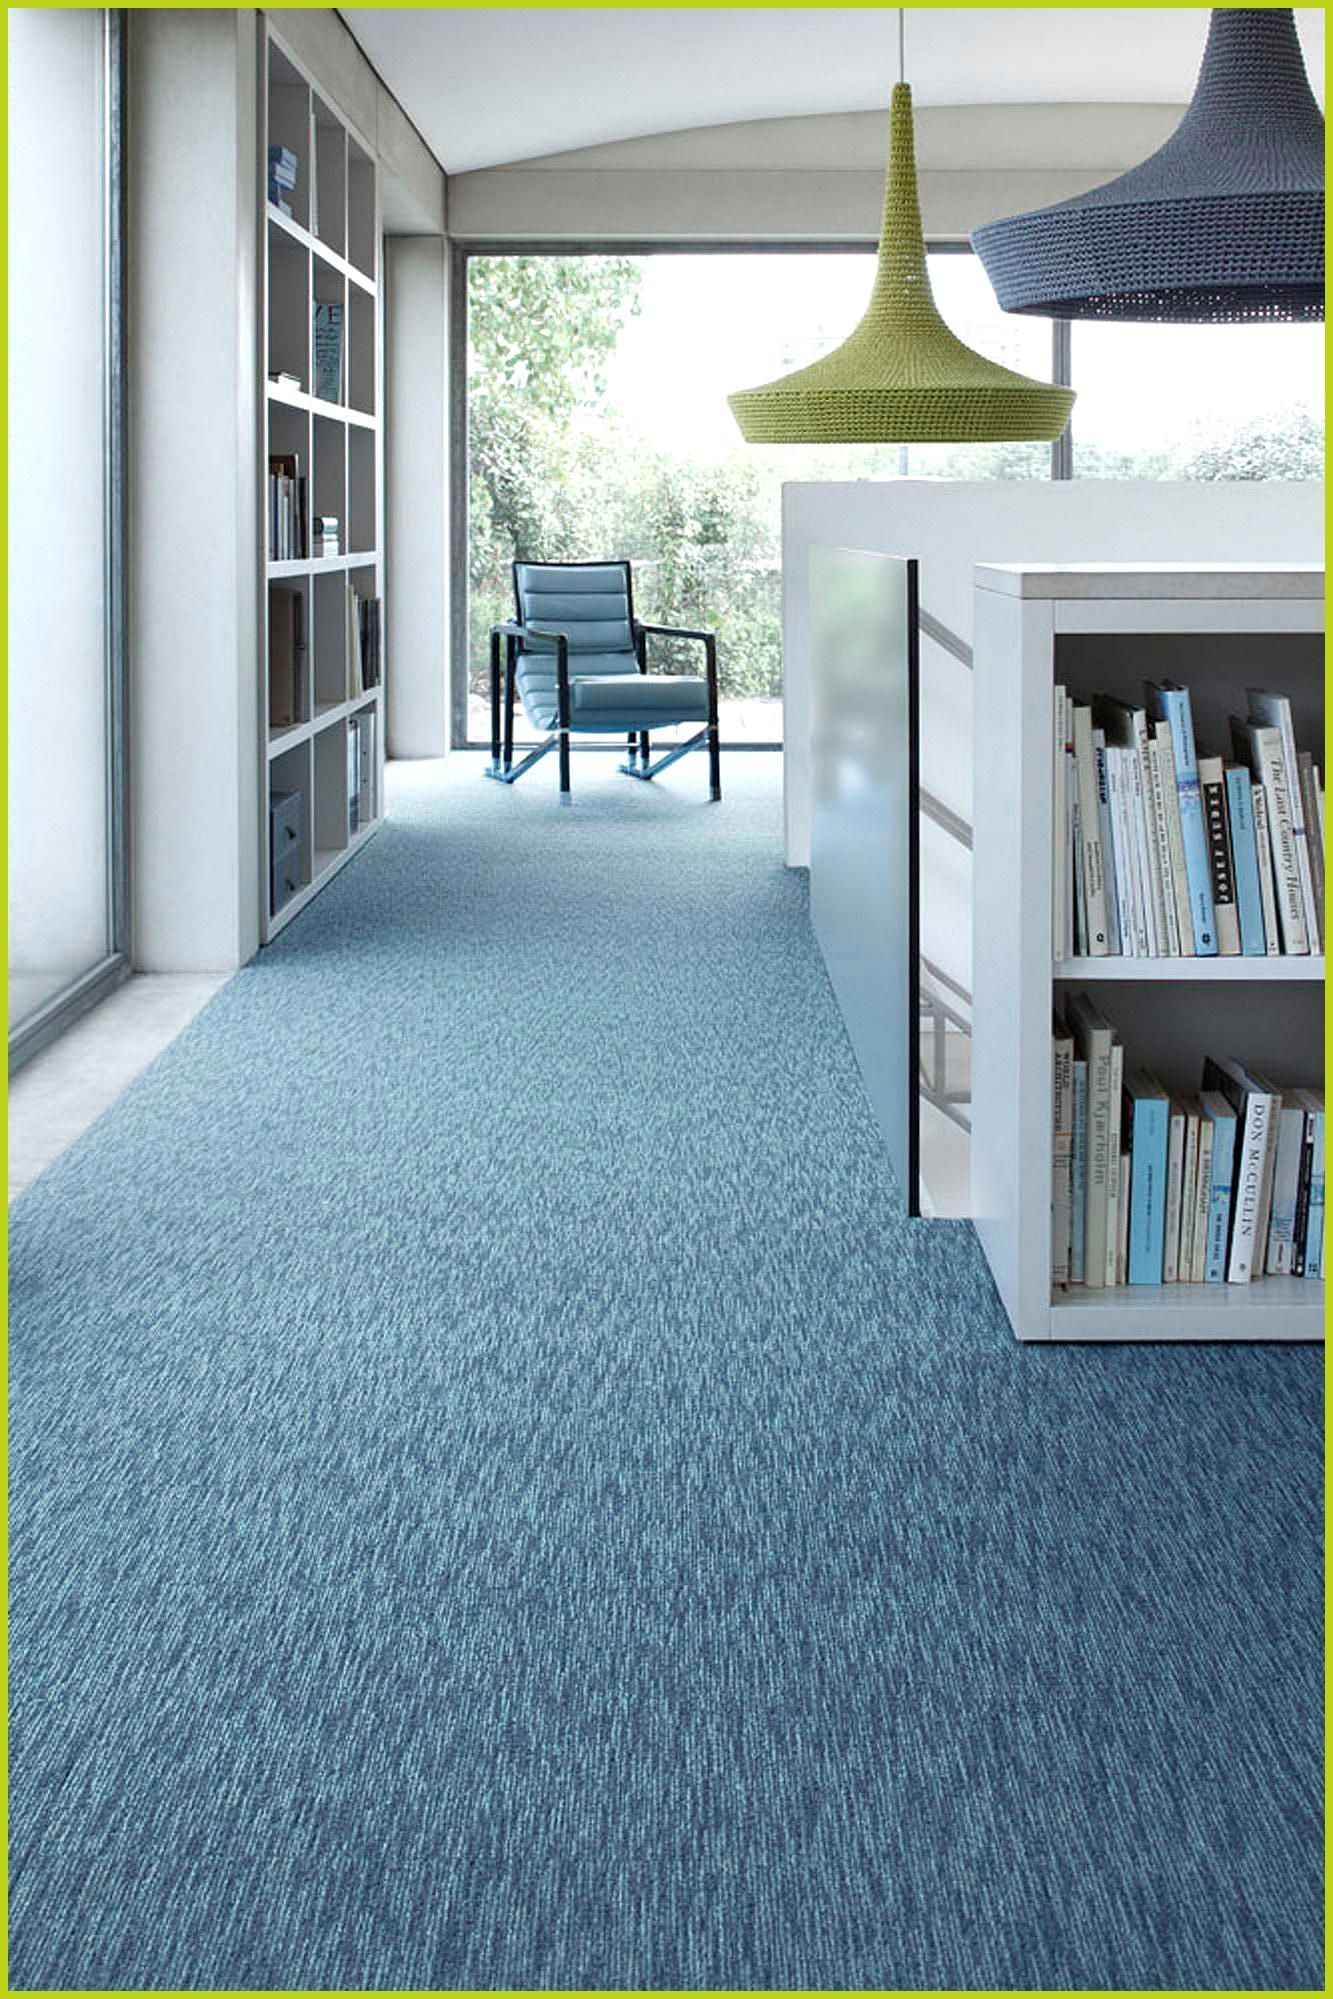 Newest Cost Free Milliken Carpet Tiles Ideas Commercial Flooring